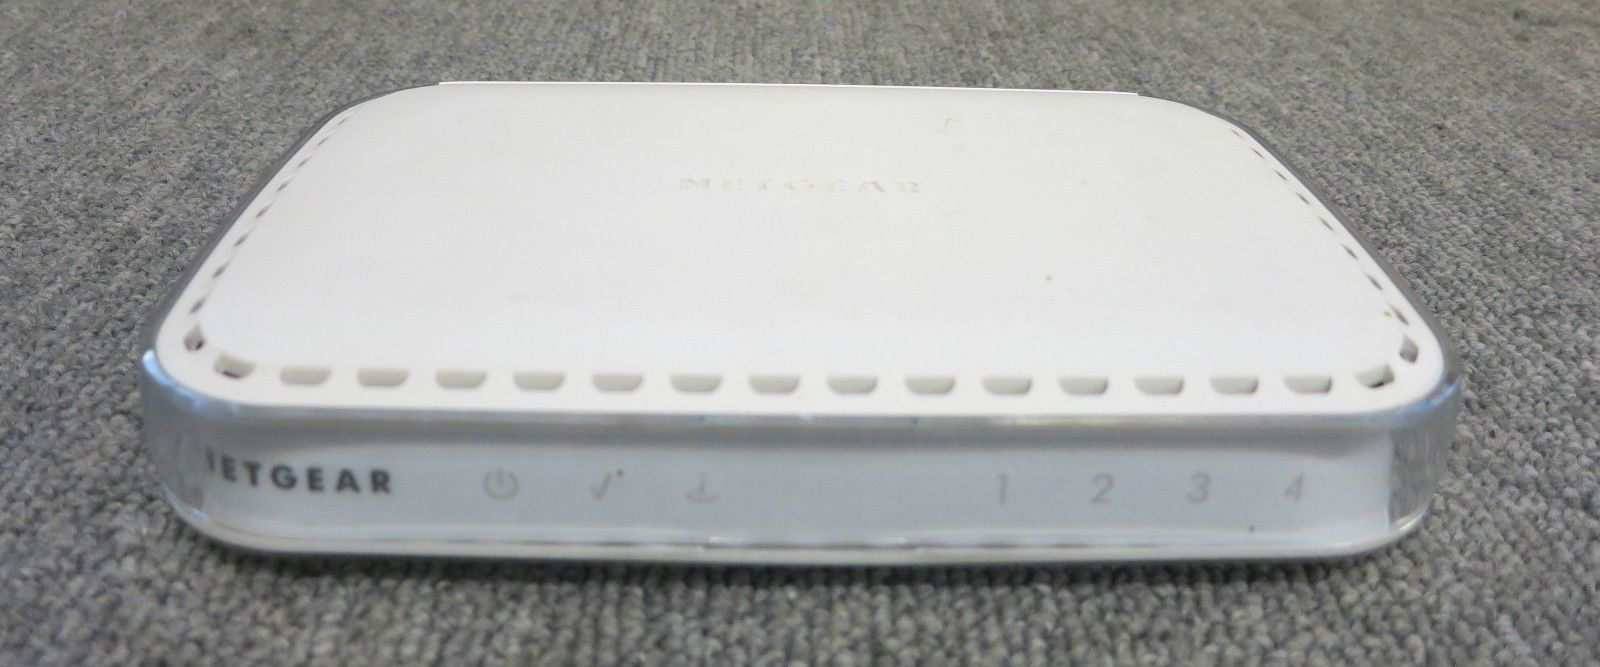 Netgear DG834 V2 Wired ADSL Firewall Router with 4-port Switch No AC ...